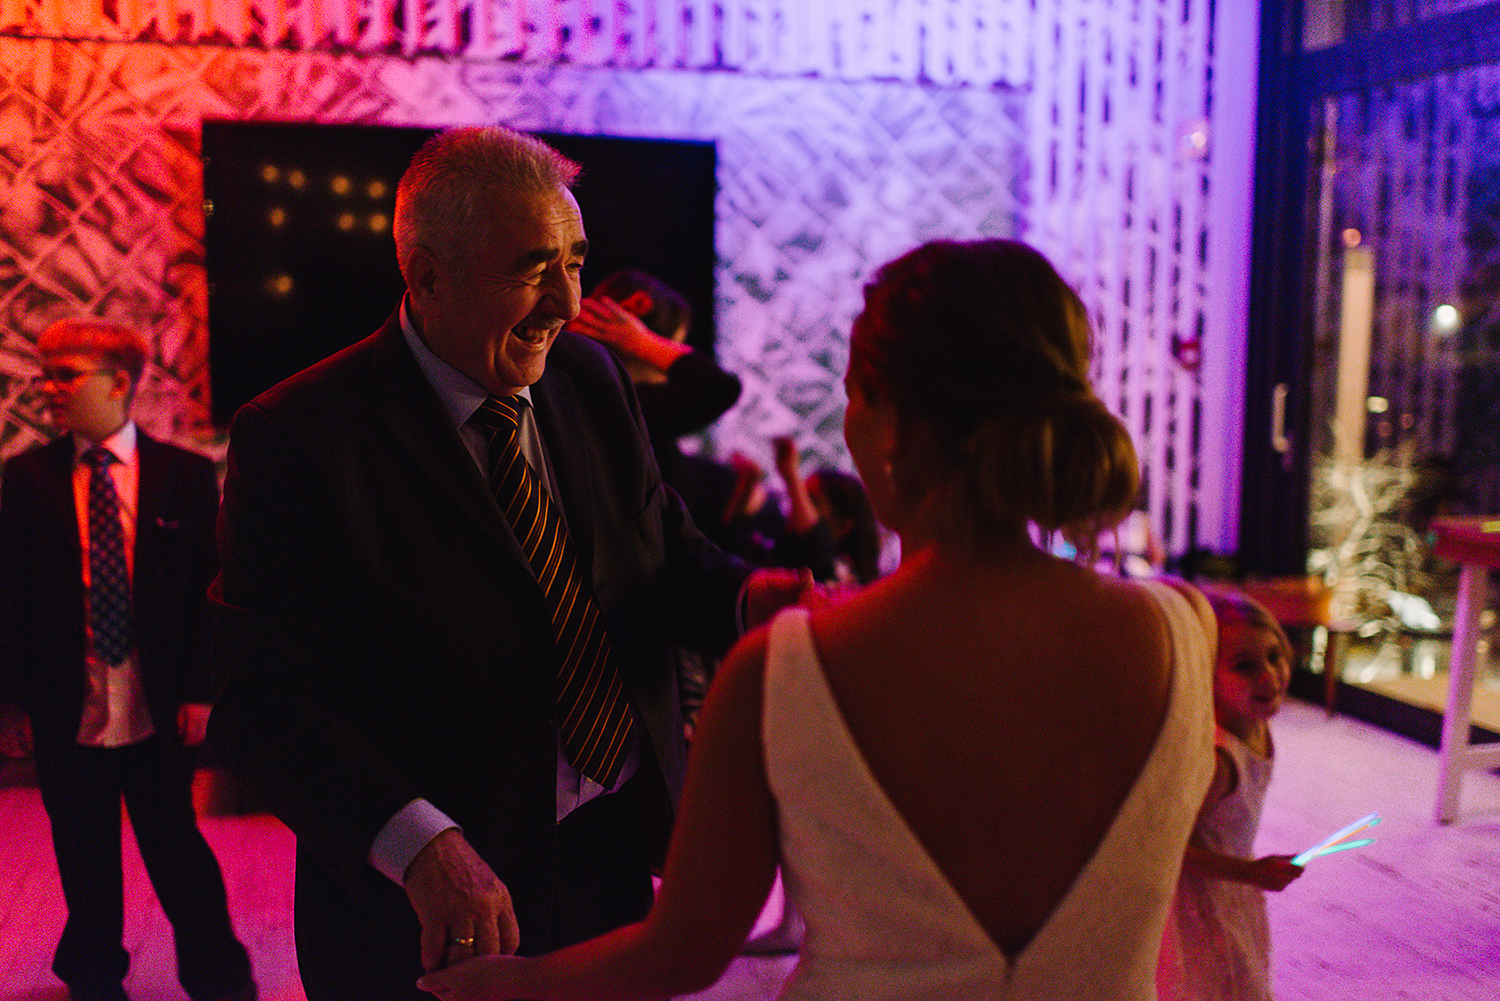 Prince-Edward-County-Wedding-Photographer-Drake-Hotel-Elopement-Venue-Reception-Father-of-the-bride-candid.jpg